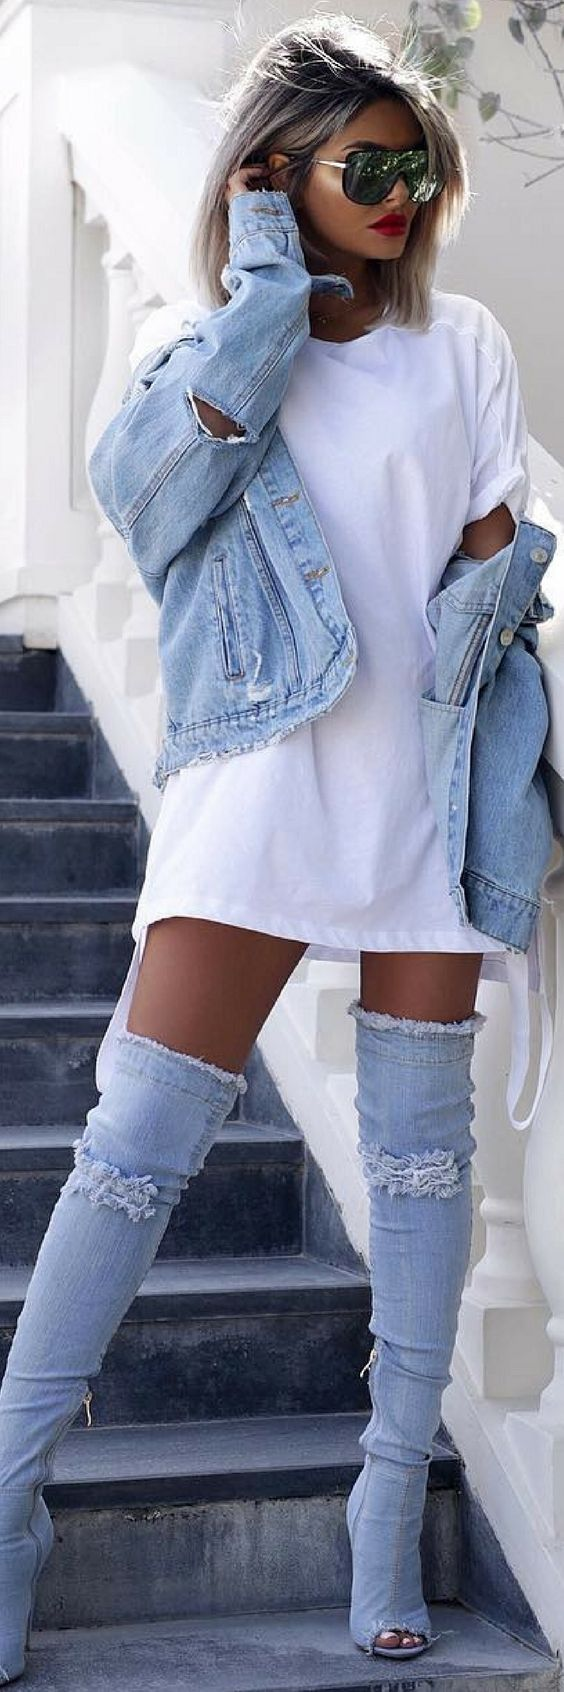 5 Of The Best Winter Outfits That'll Make You Look Amazing https://ecstasymodels.blog/2017/12/16/5-best-winter-outfits-look-amazing/